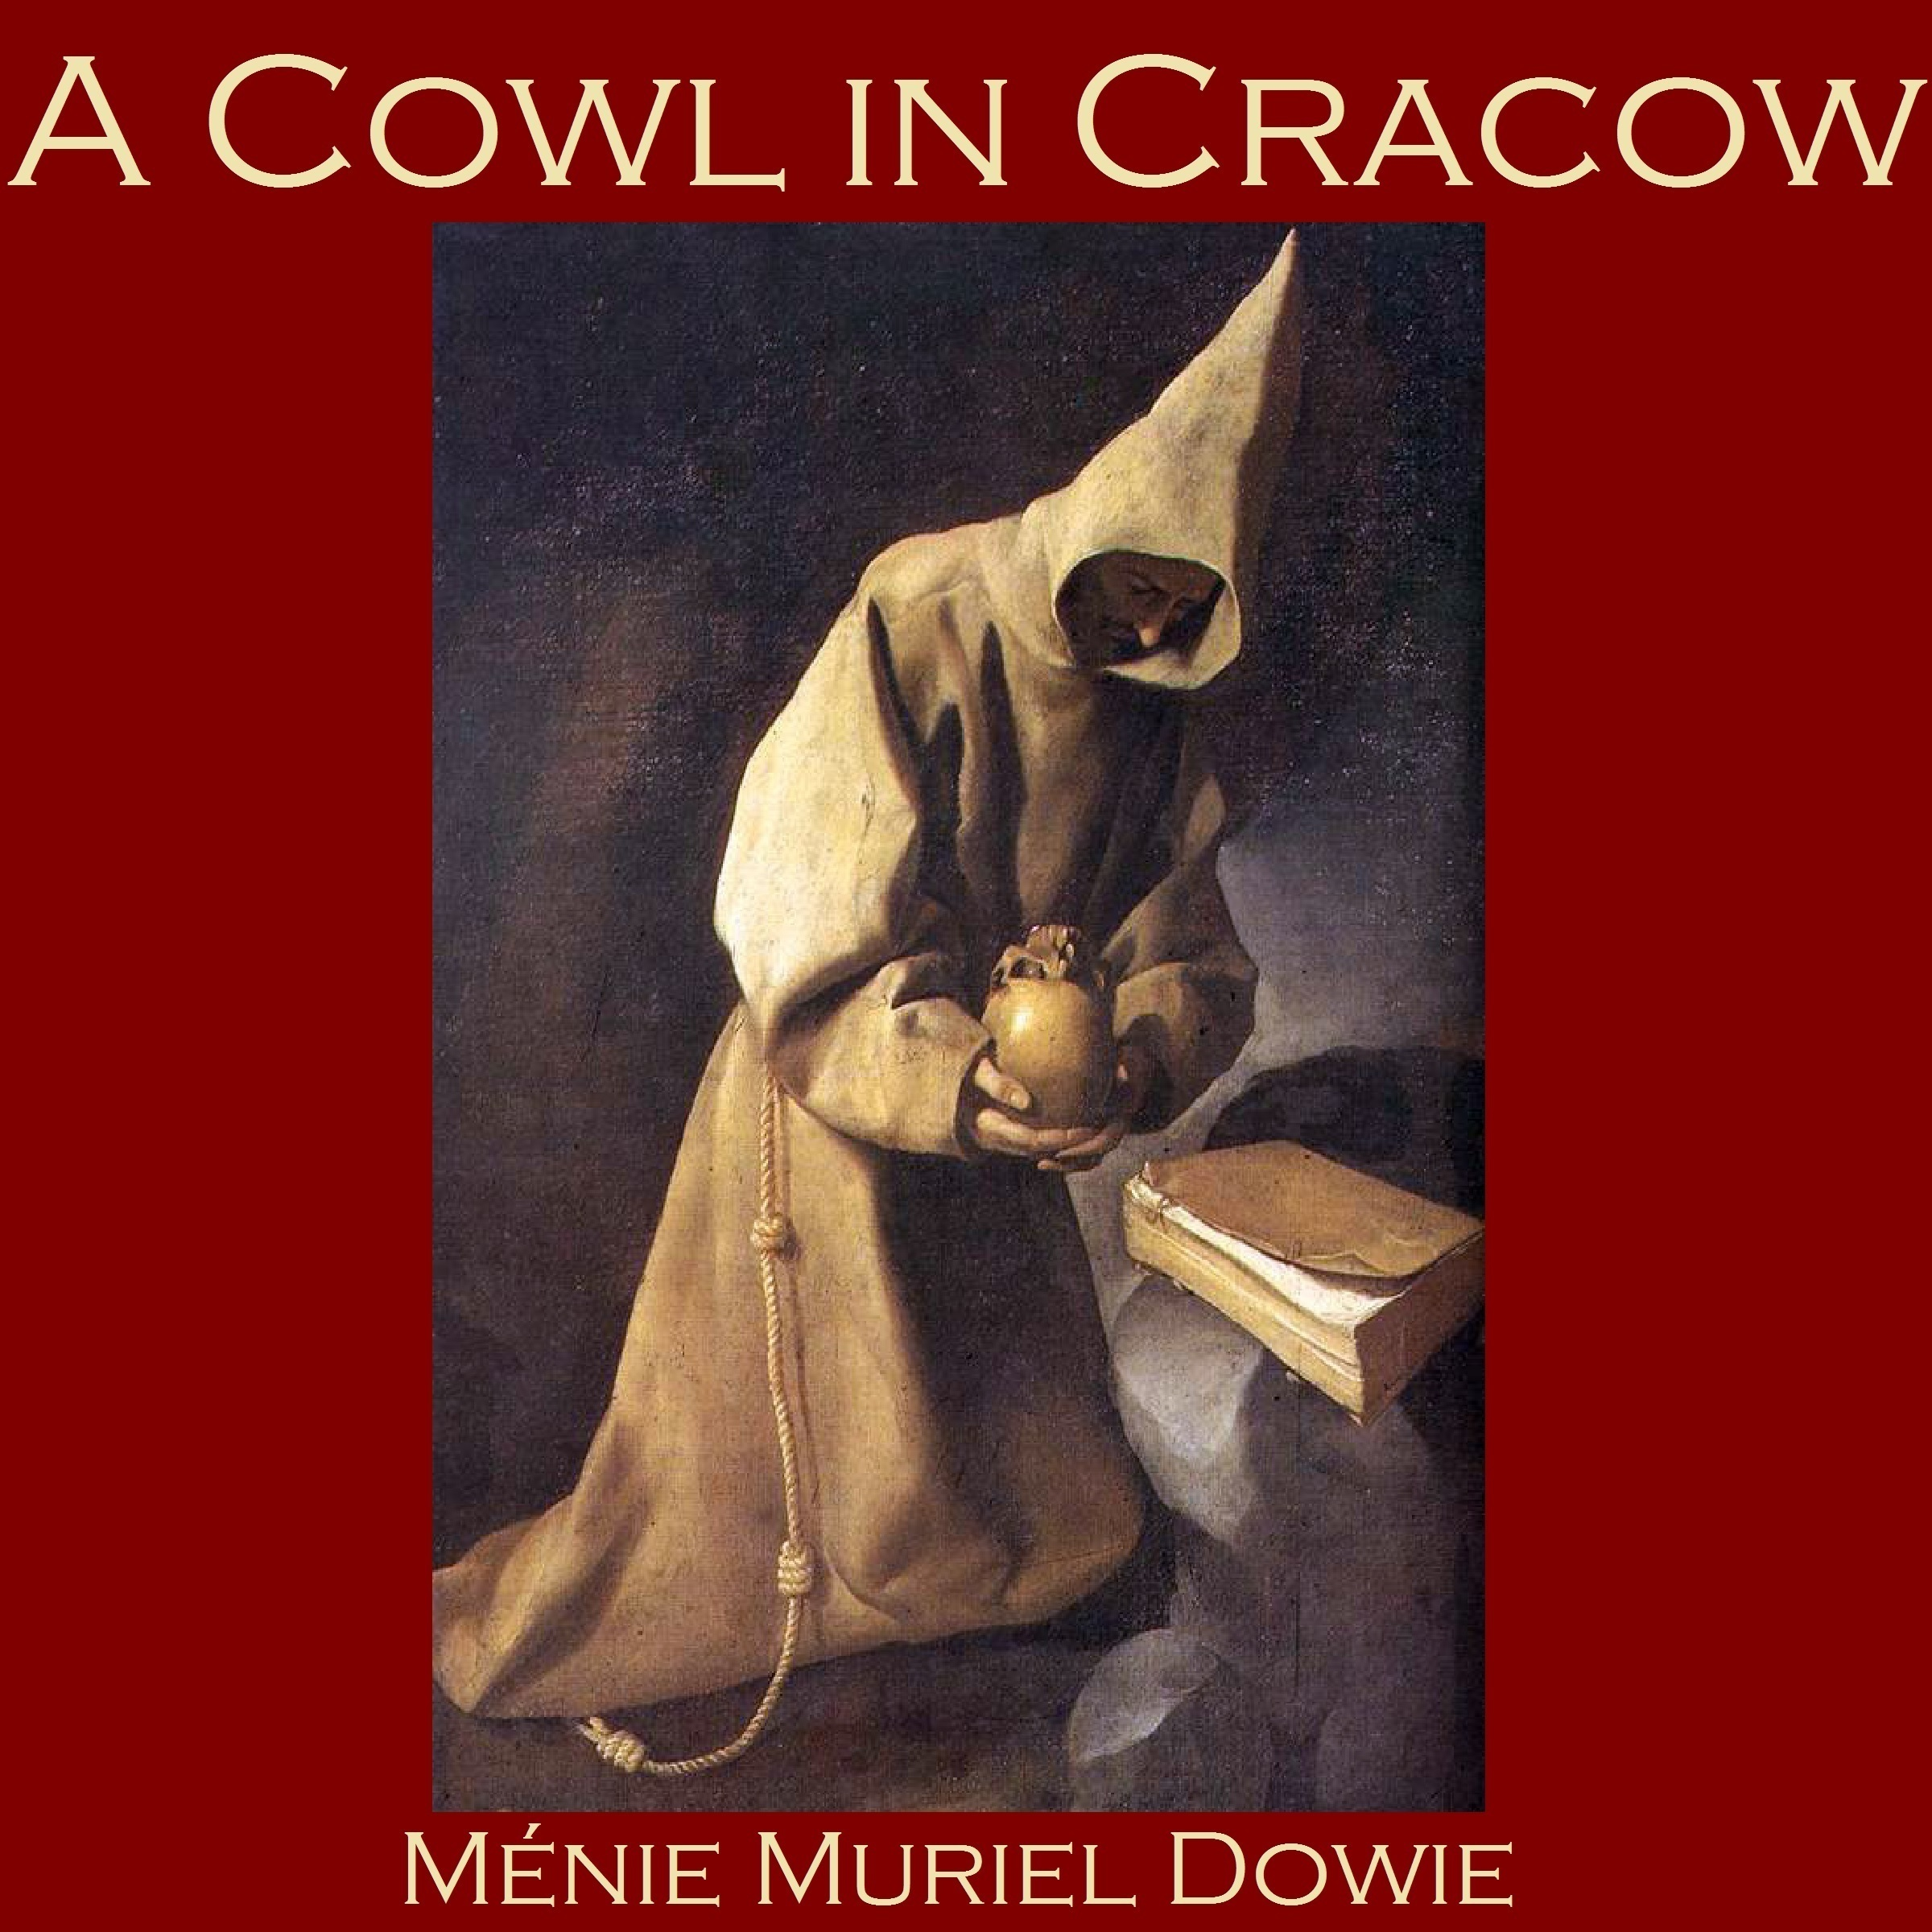 Printable A Cowl in Cracow Audiobook Cover Art